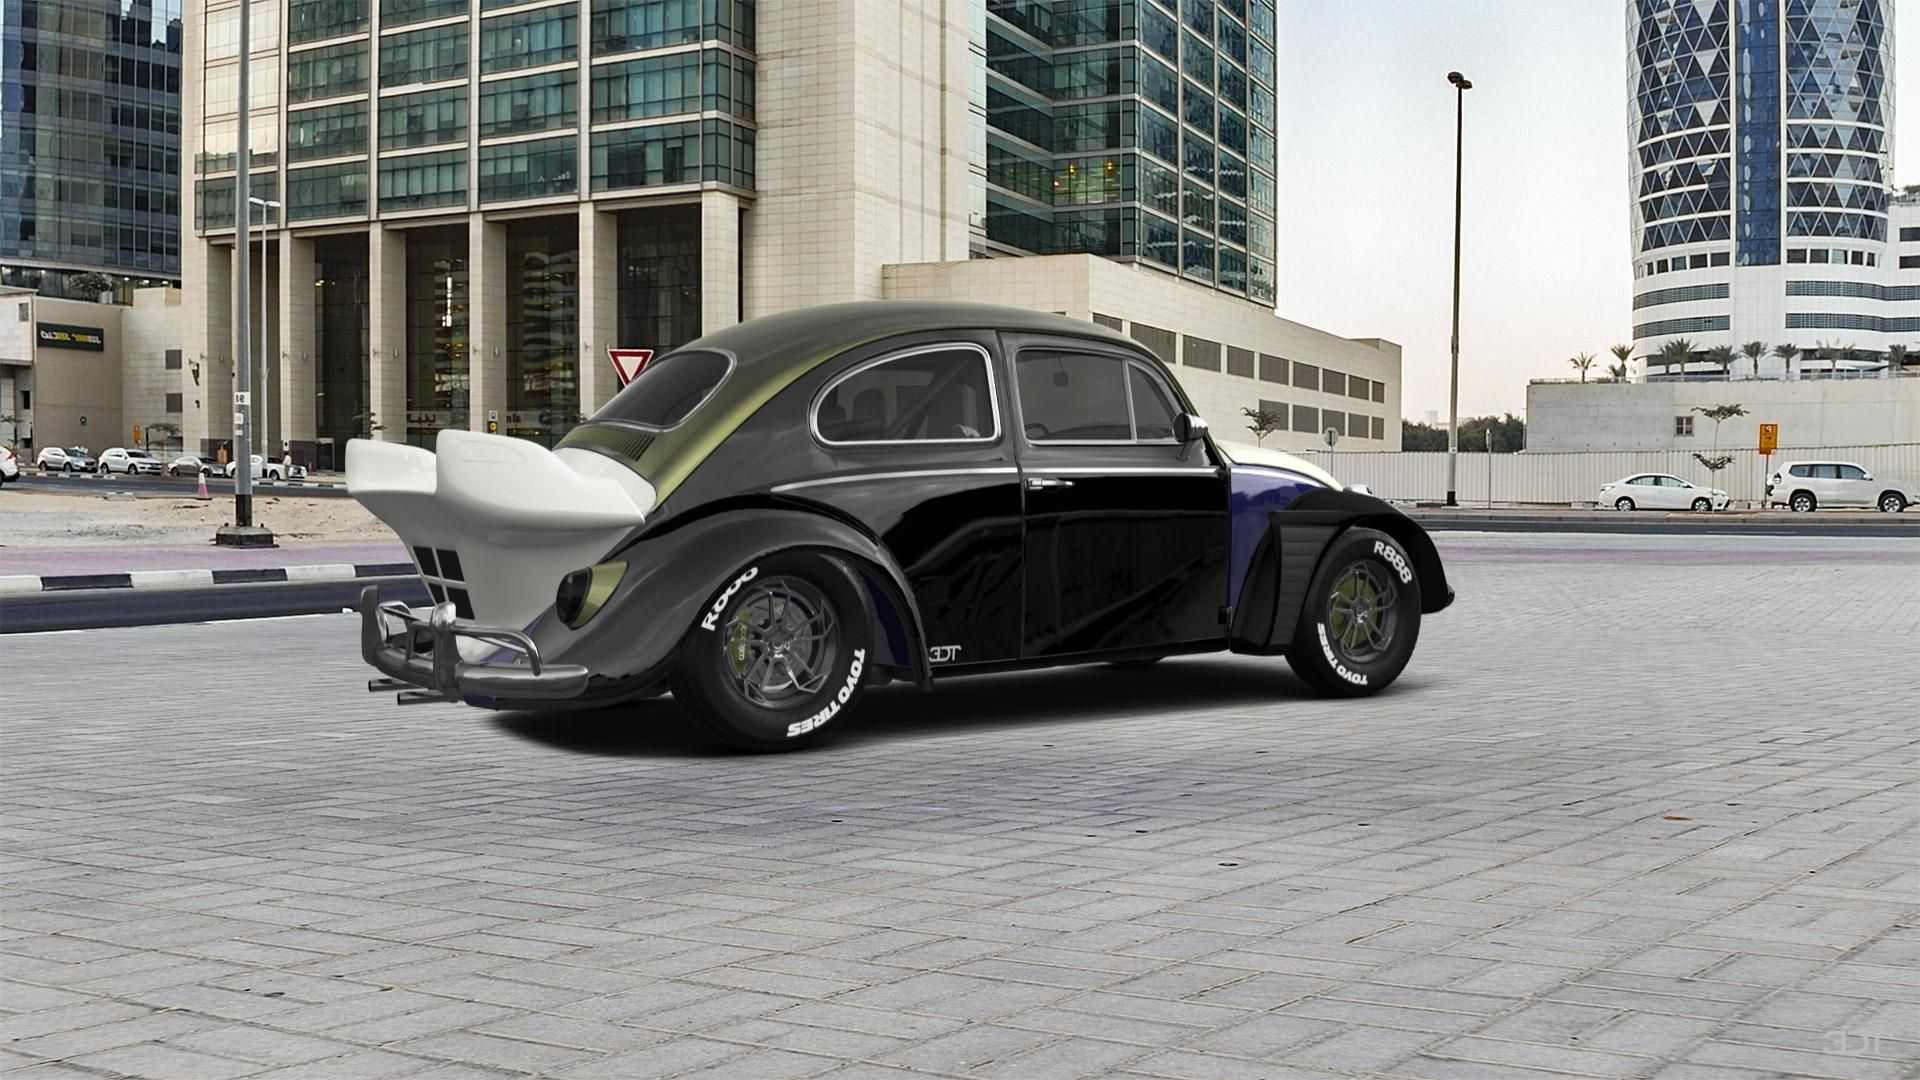 Checkout My Tuning Volkswagen Beetle 1964 At 3dtuning 3dtuning